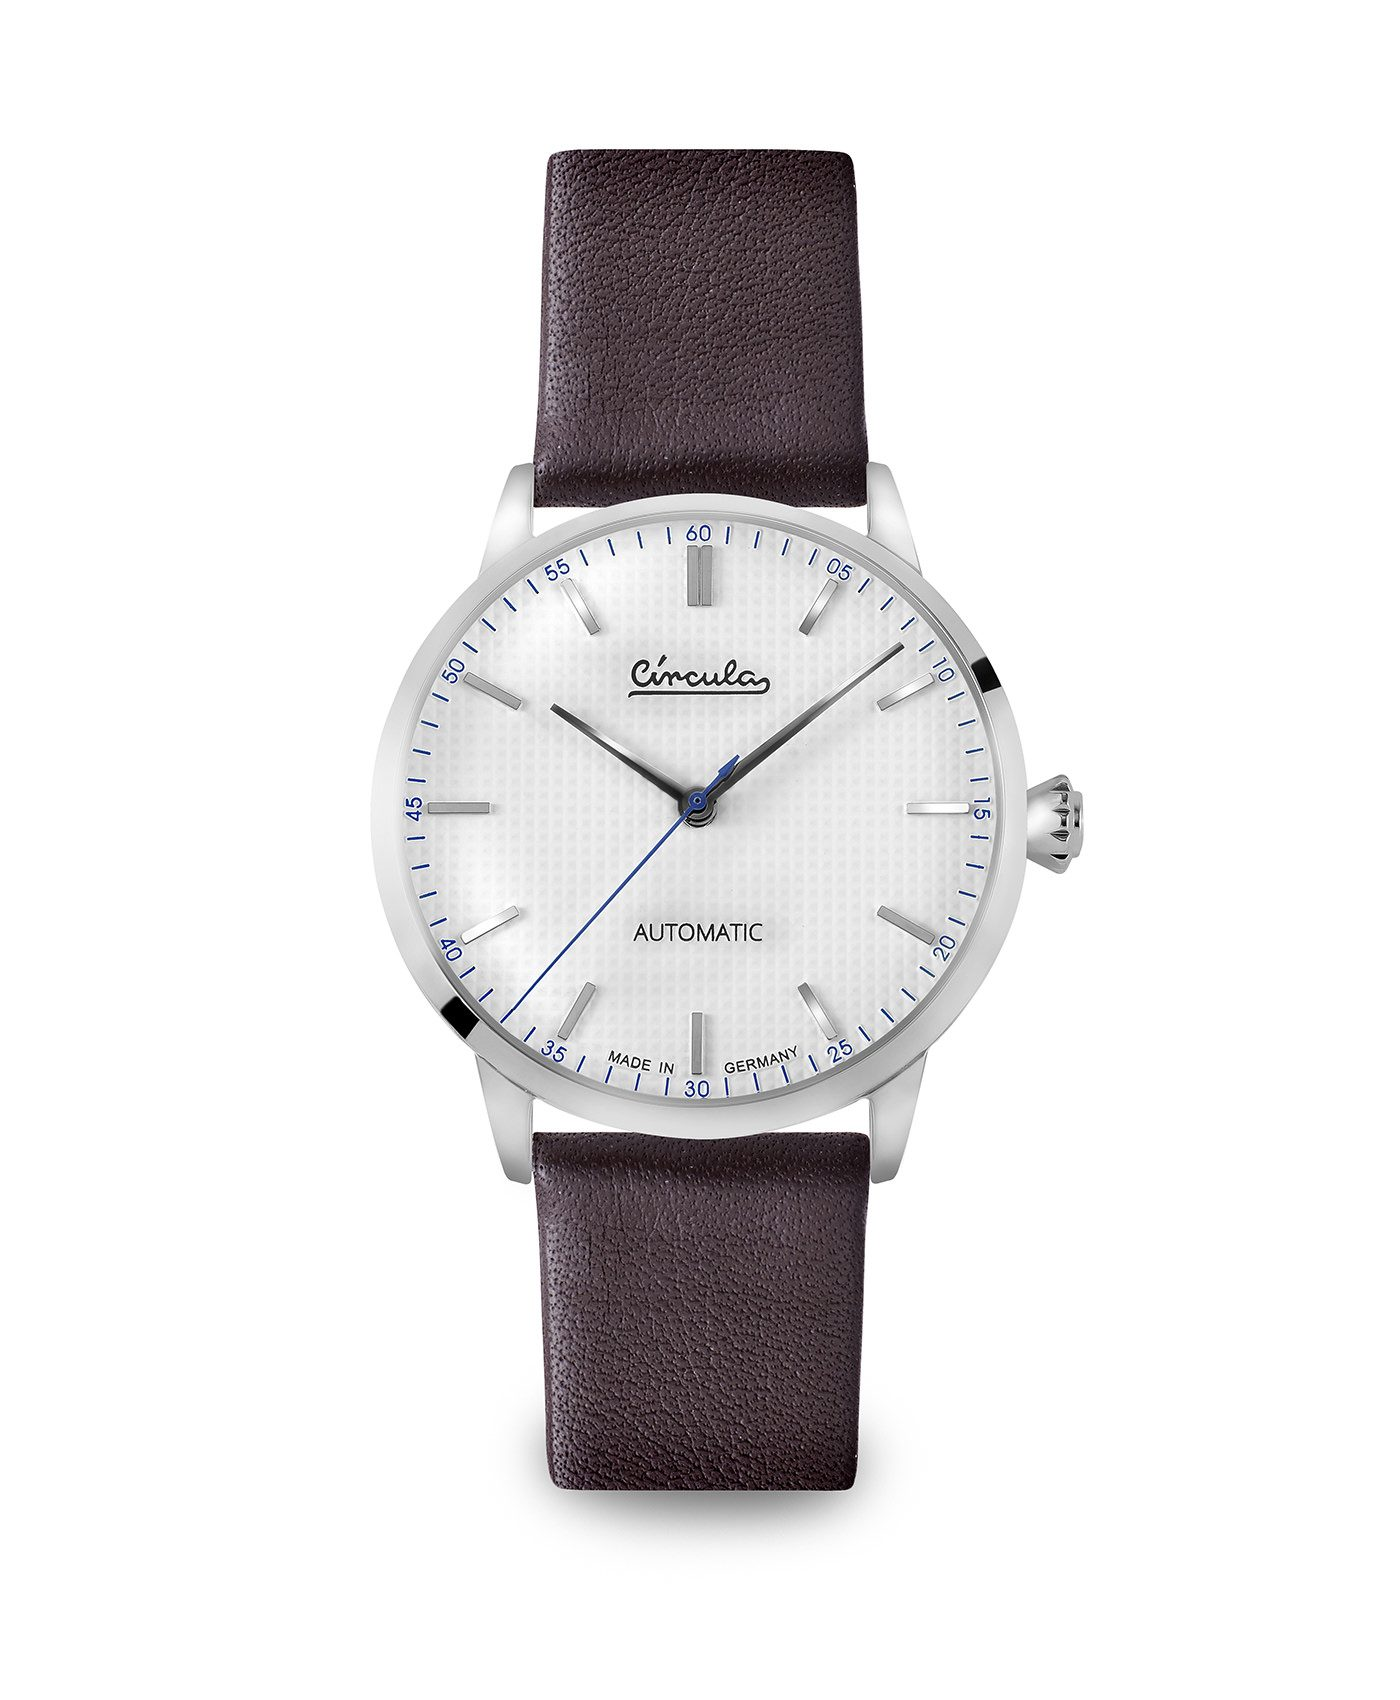 WB Circula - Classic Automatic White - Leather Brown front